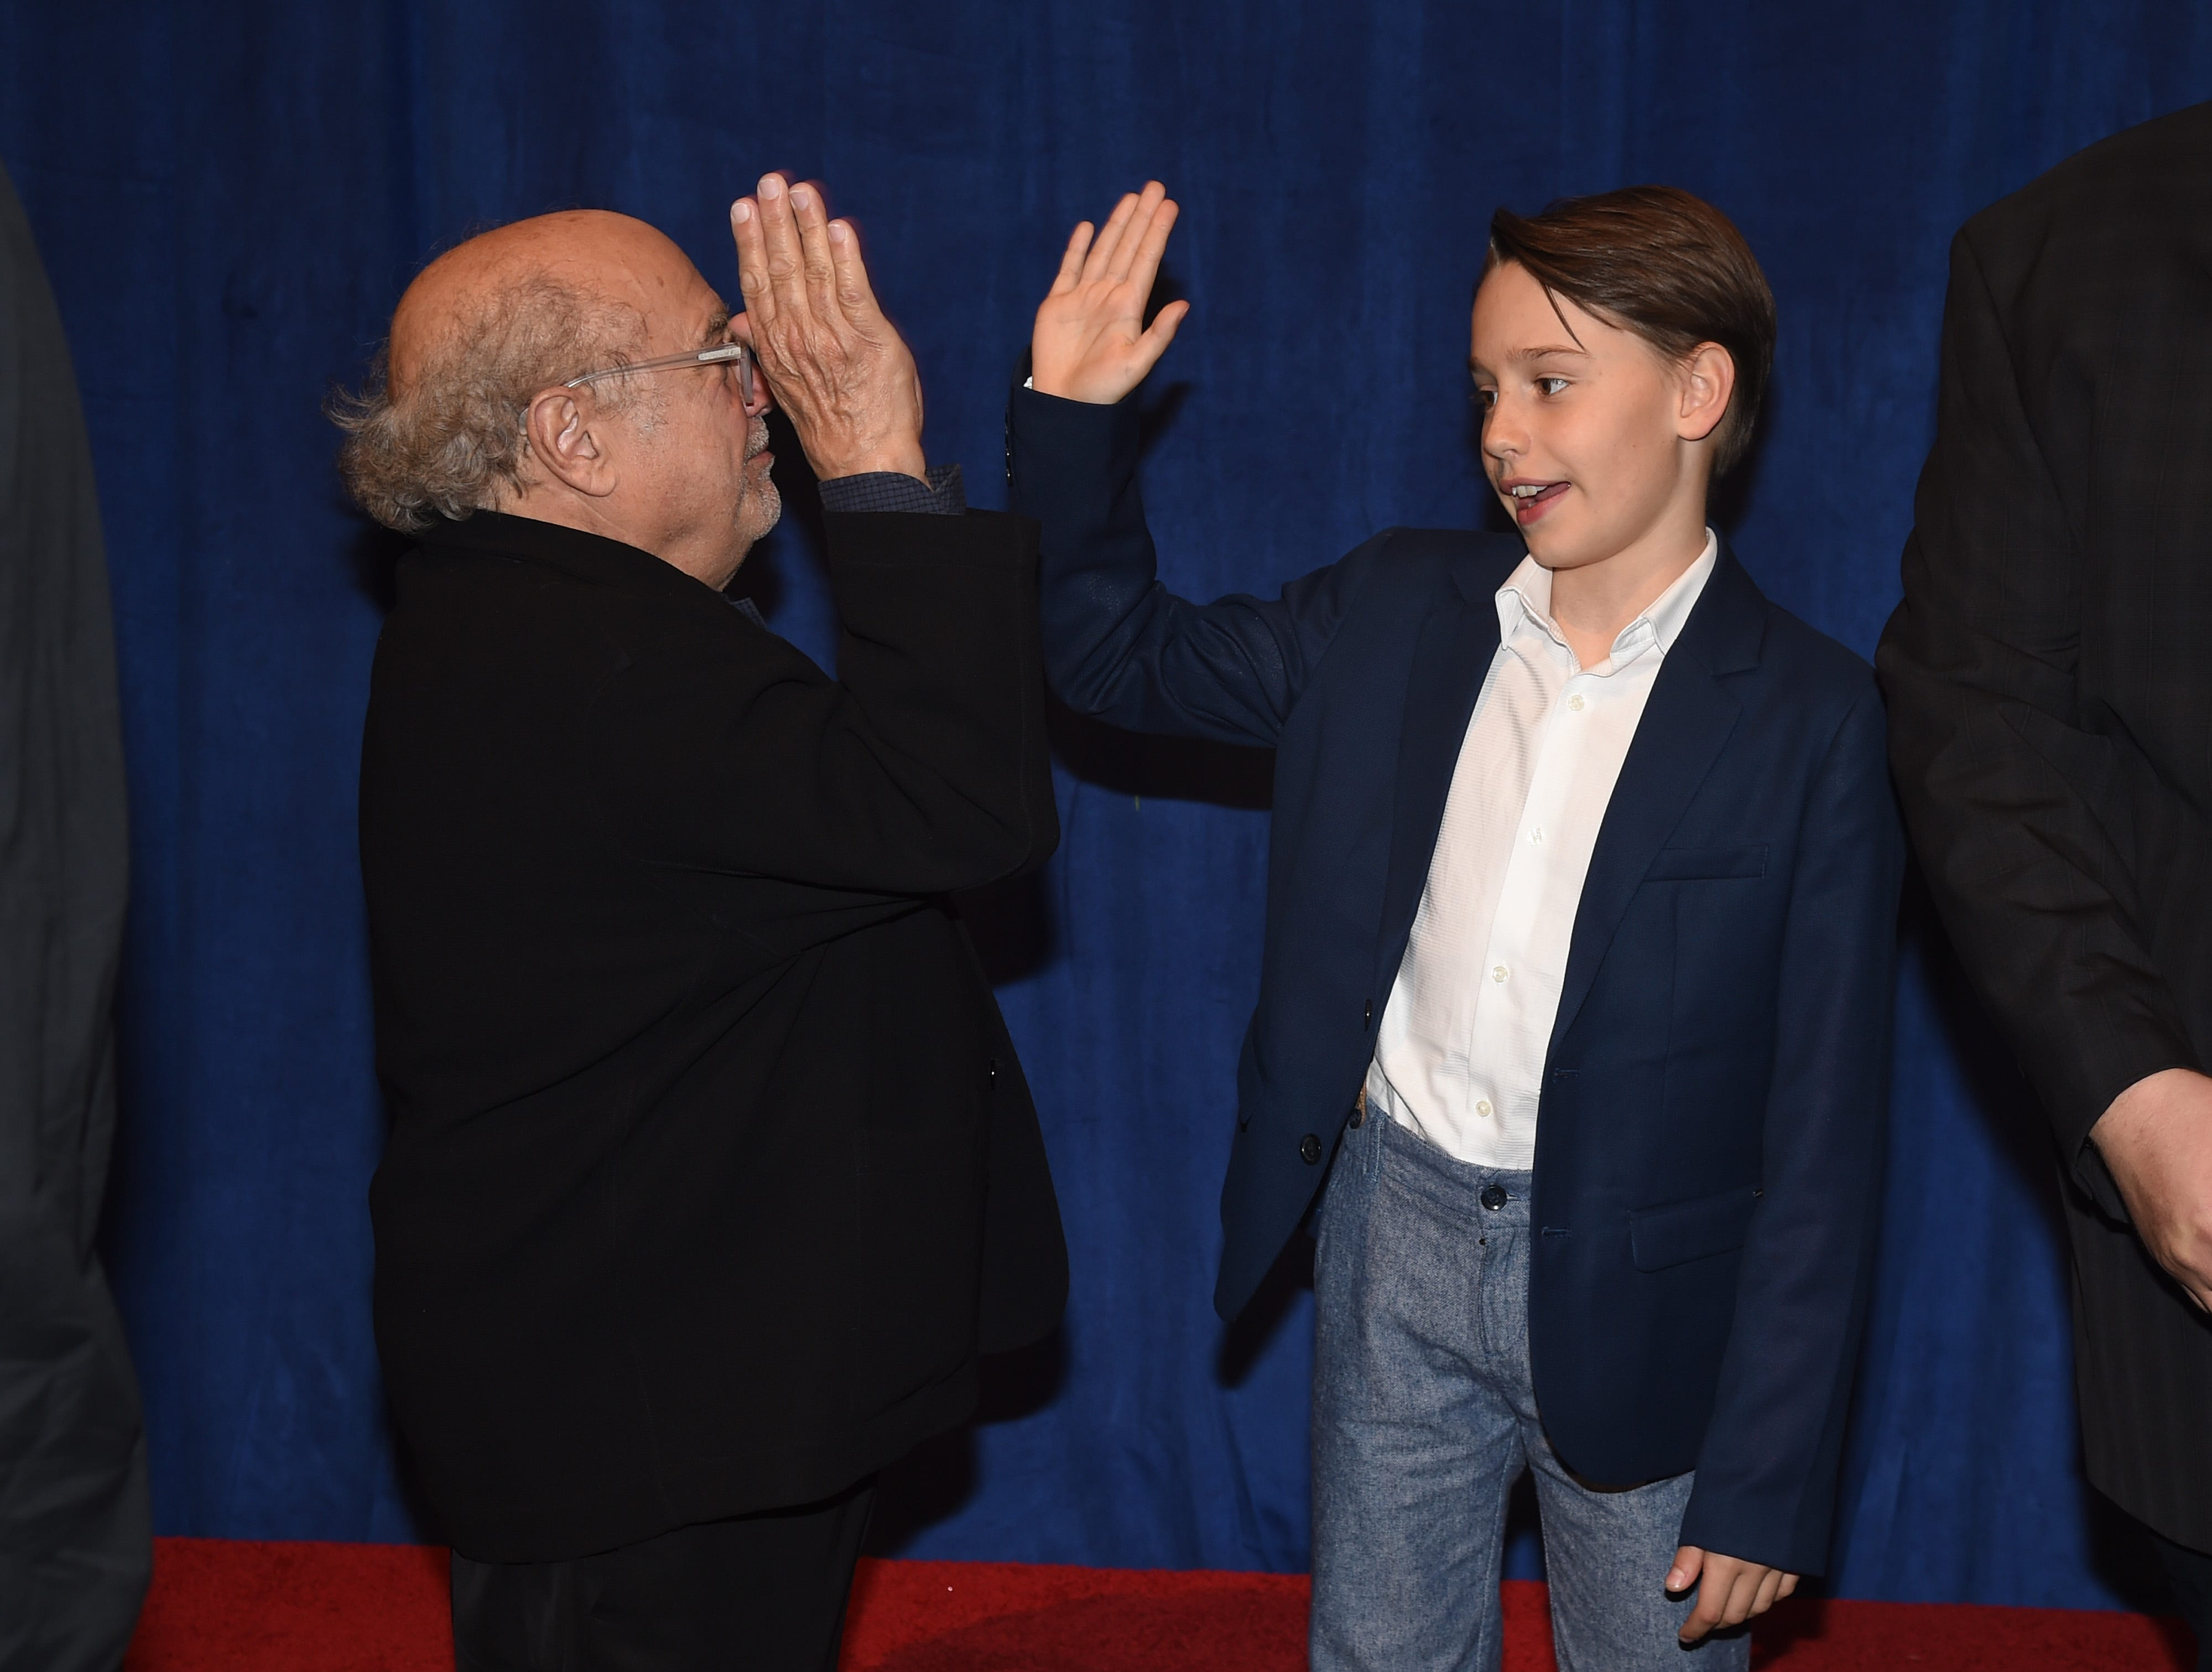 """LOS ANGELES, CALIFORNIA - MARCH 11: (L-R) Danny DeVito and Finley Hobbins attend the premiere of Disney's """"Dumbo"""" at El Capitan Theatre on March 11, 2019 in Los Angeles, California. (Photo by Kevin Winter/Getty Images) ORG XMIT: 775305574 ORIG FILE ID: 1135224388"""